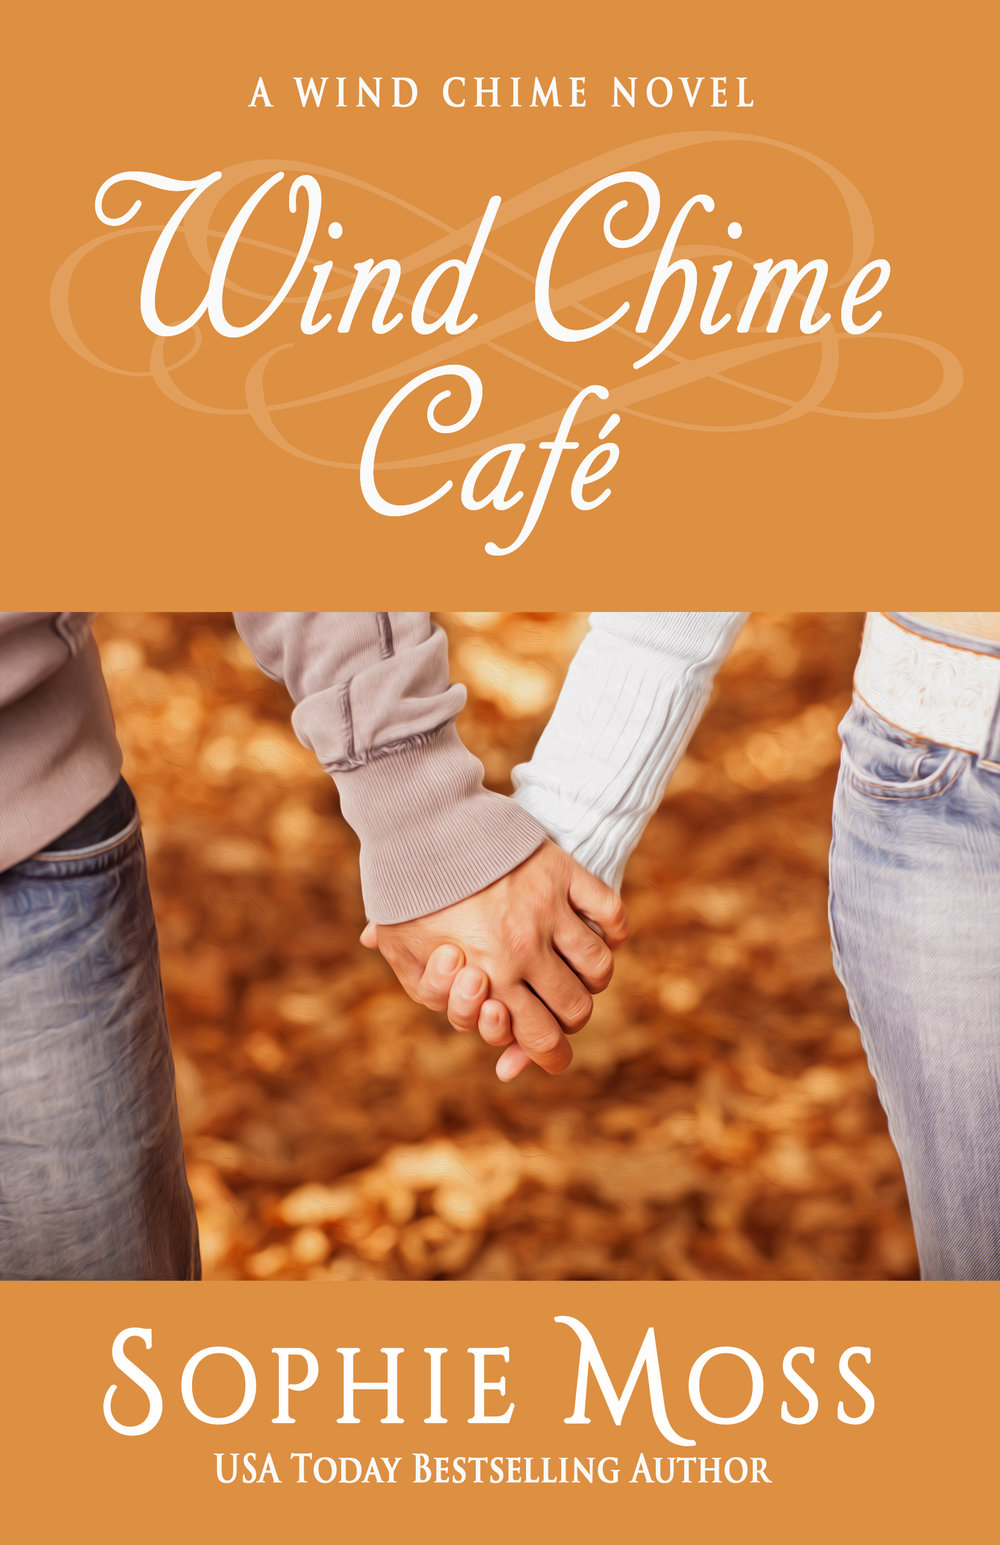 Wind Chime Cafe ebook cover Aug 14 2017 VELLUM.jpg